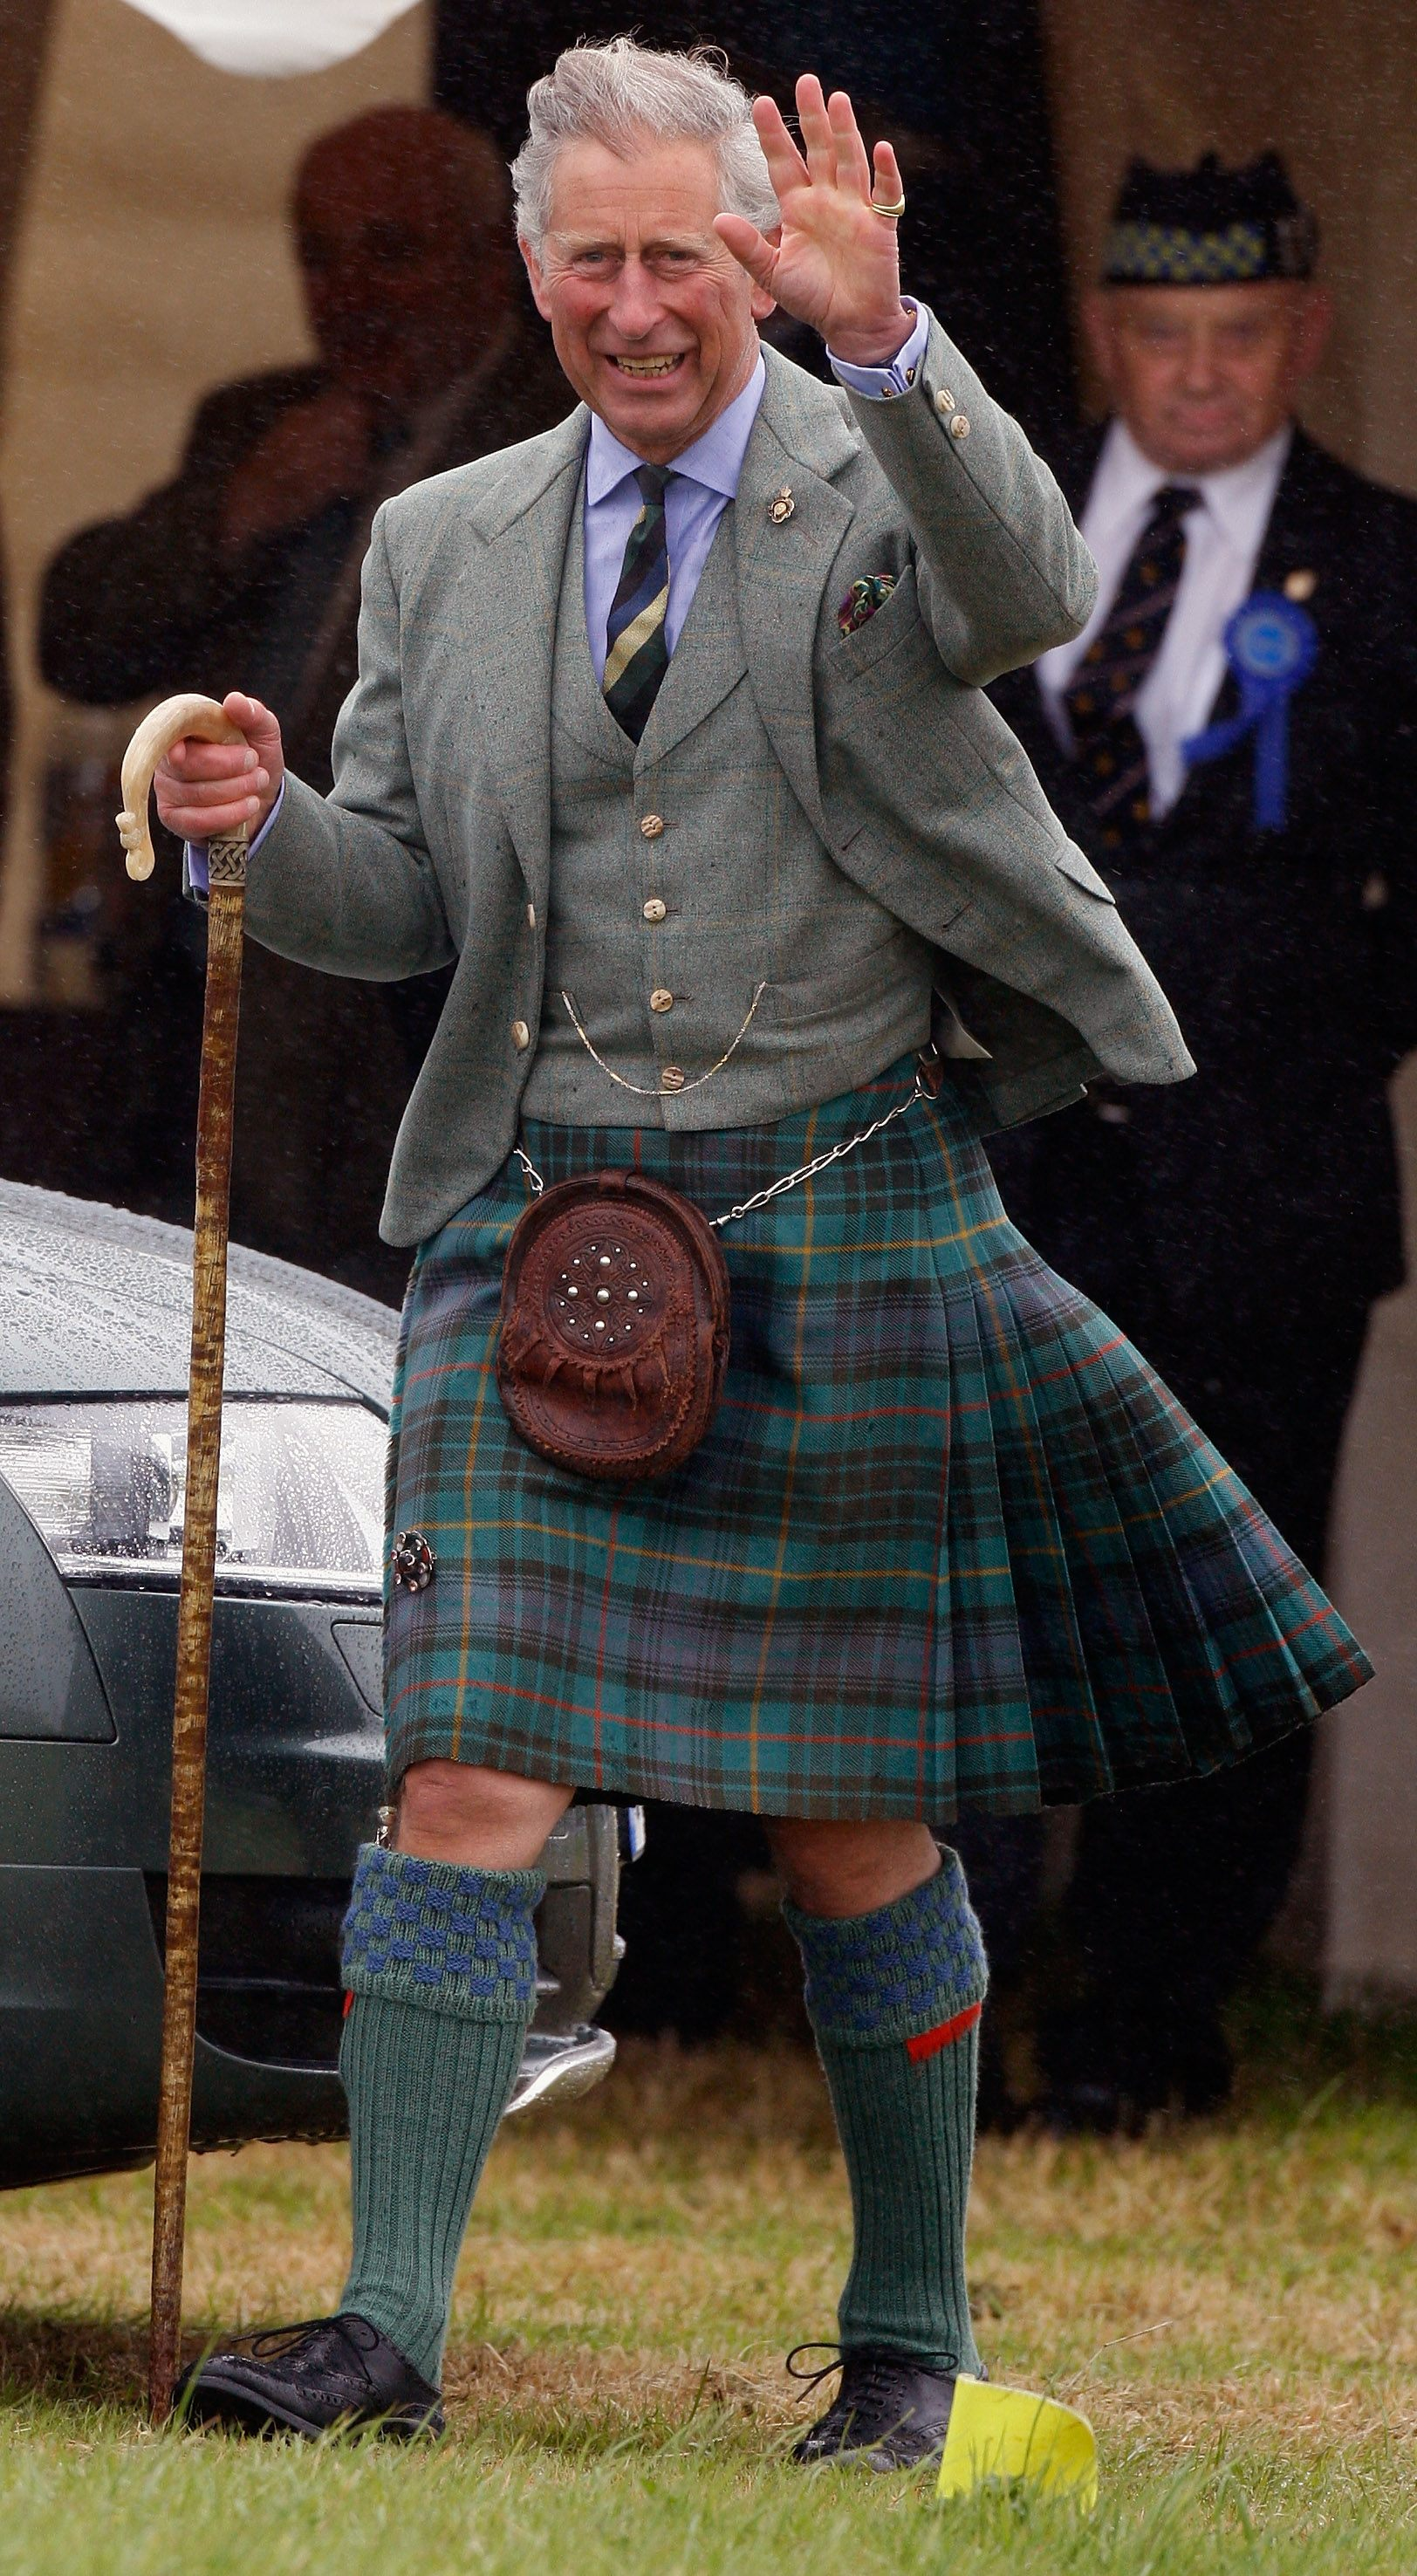 Why Does Prince Charles Wear a Kilt? Royal Family Style